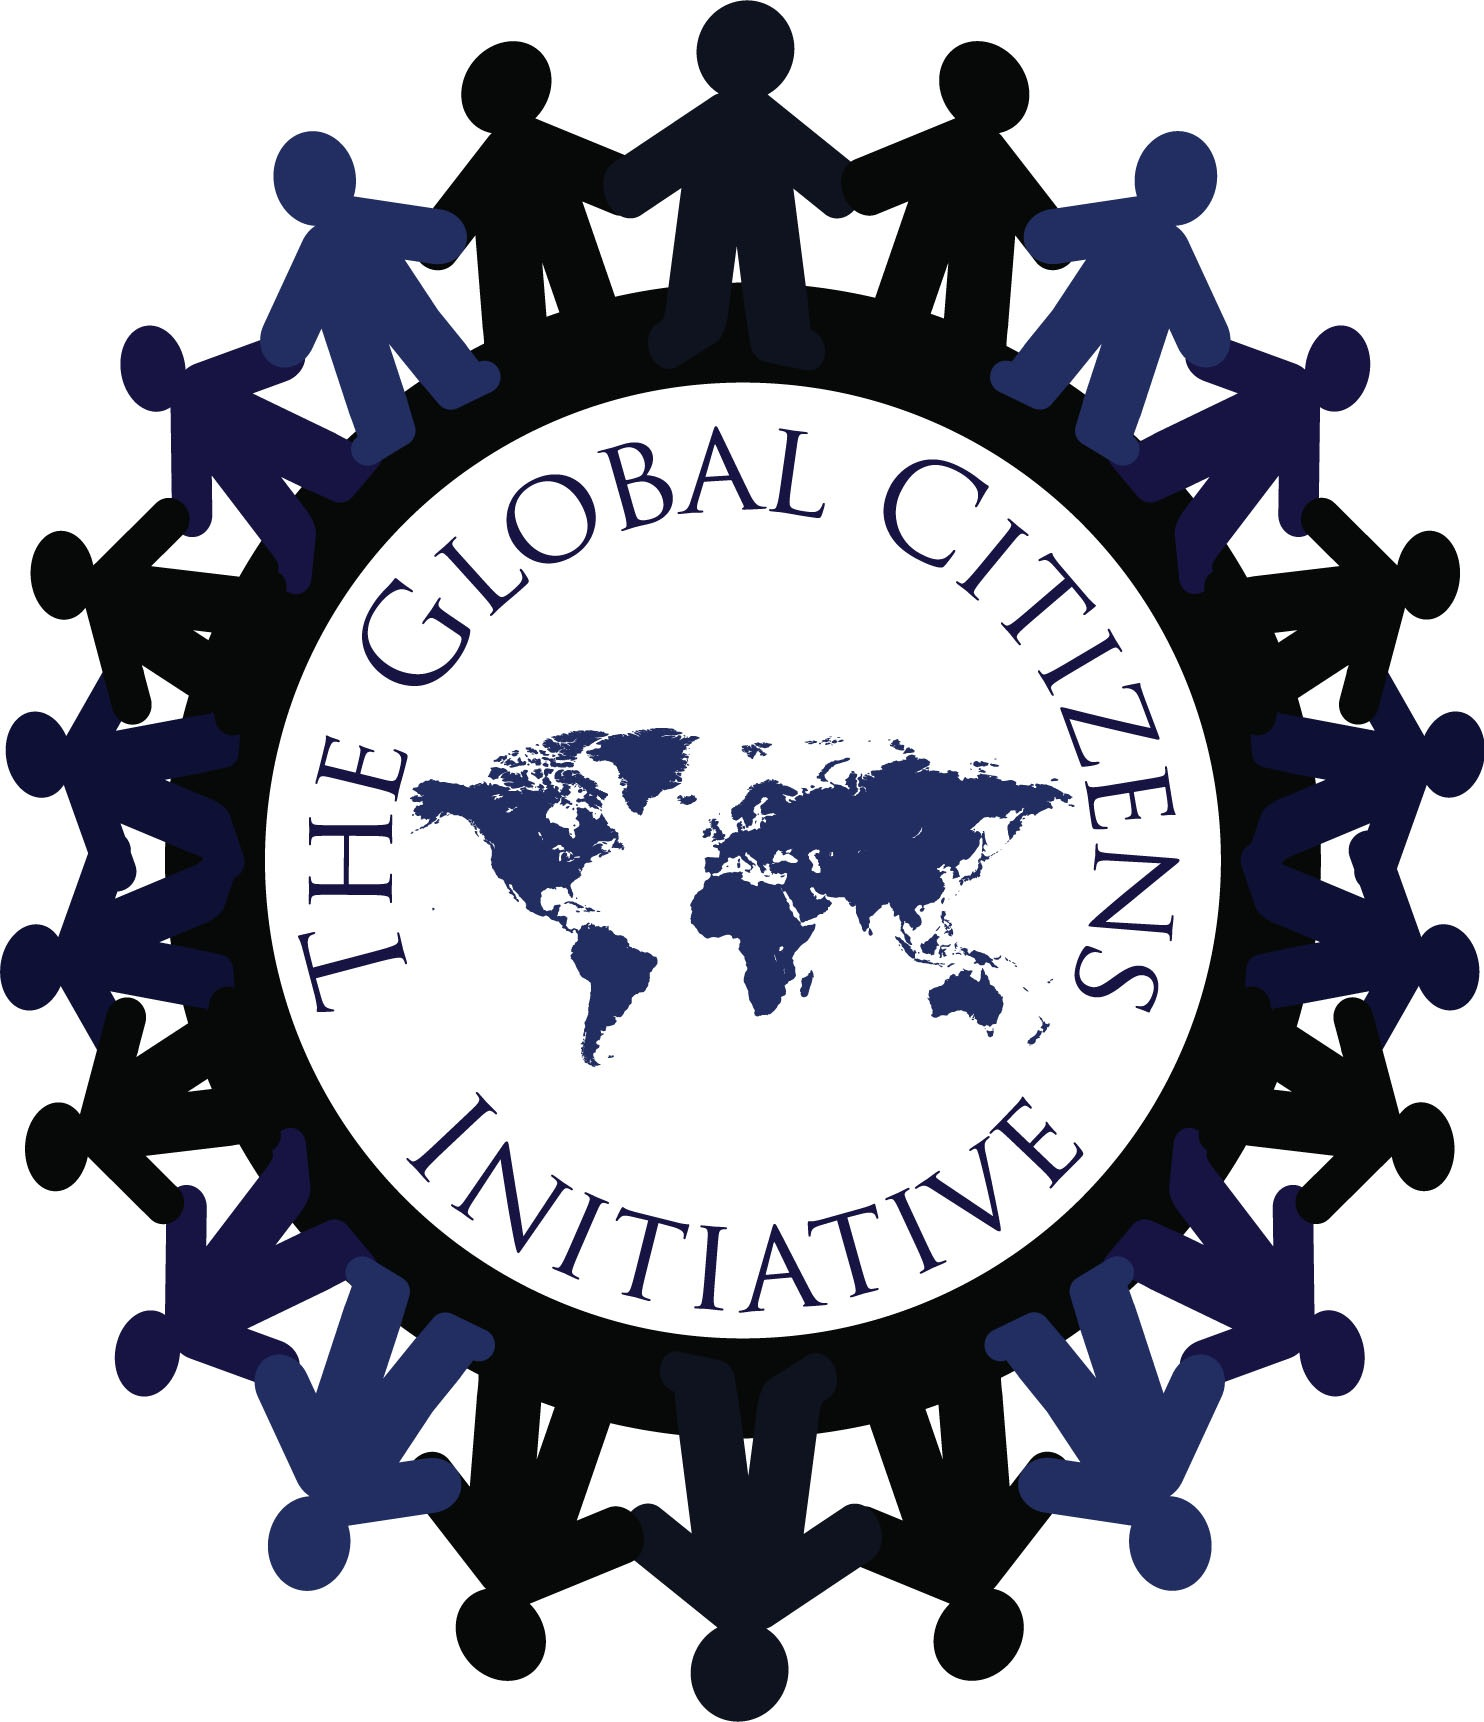 What Does it Mean to be a Global Citizen?